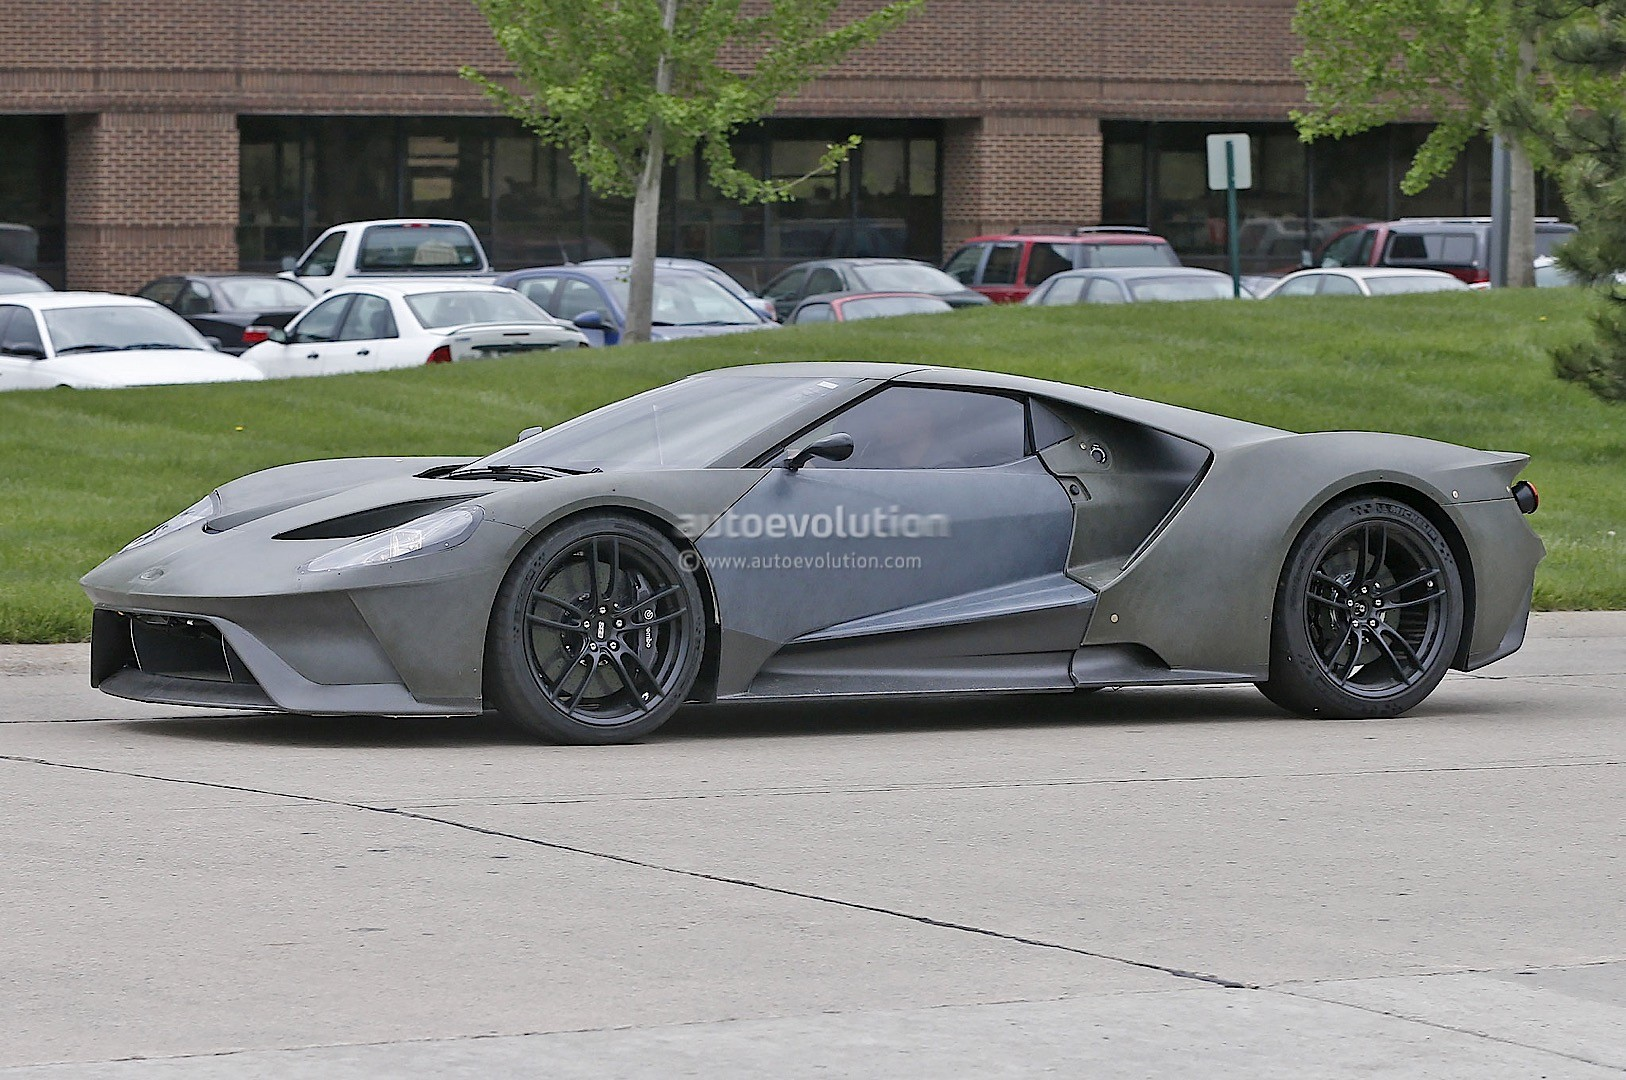 2017 Ford Gt Test Mule Spied Looks Apocalyptic Sans Paint